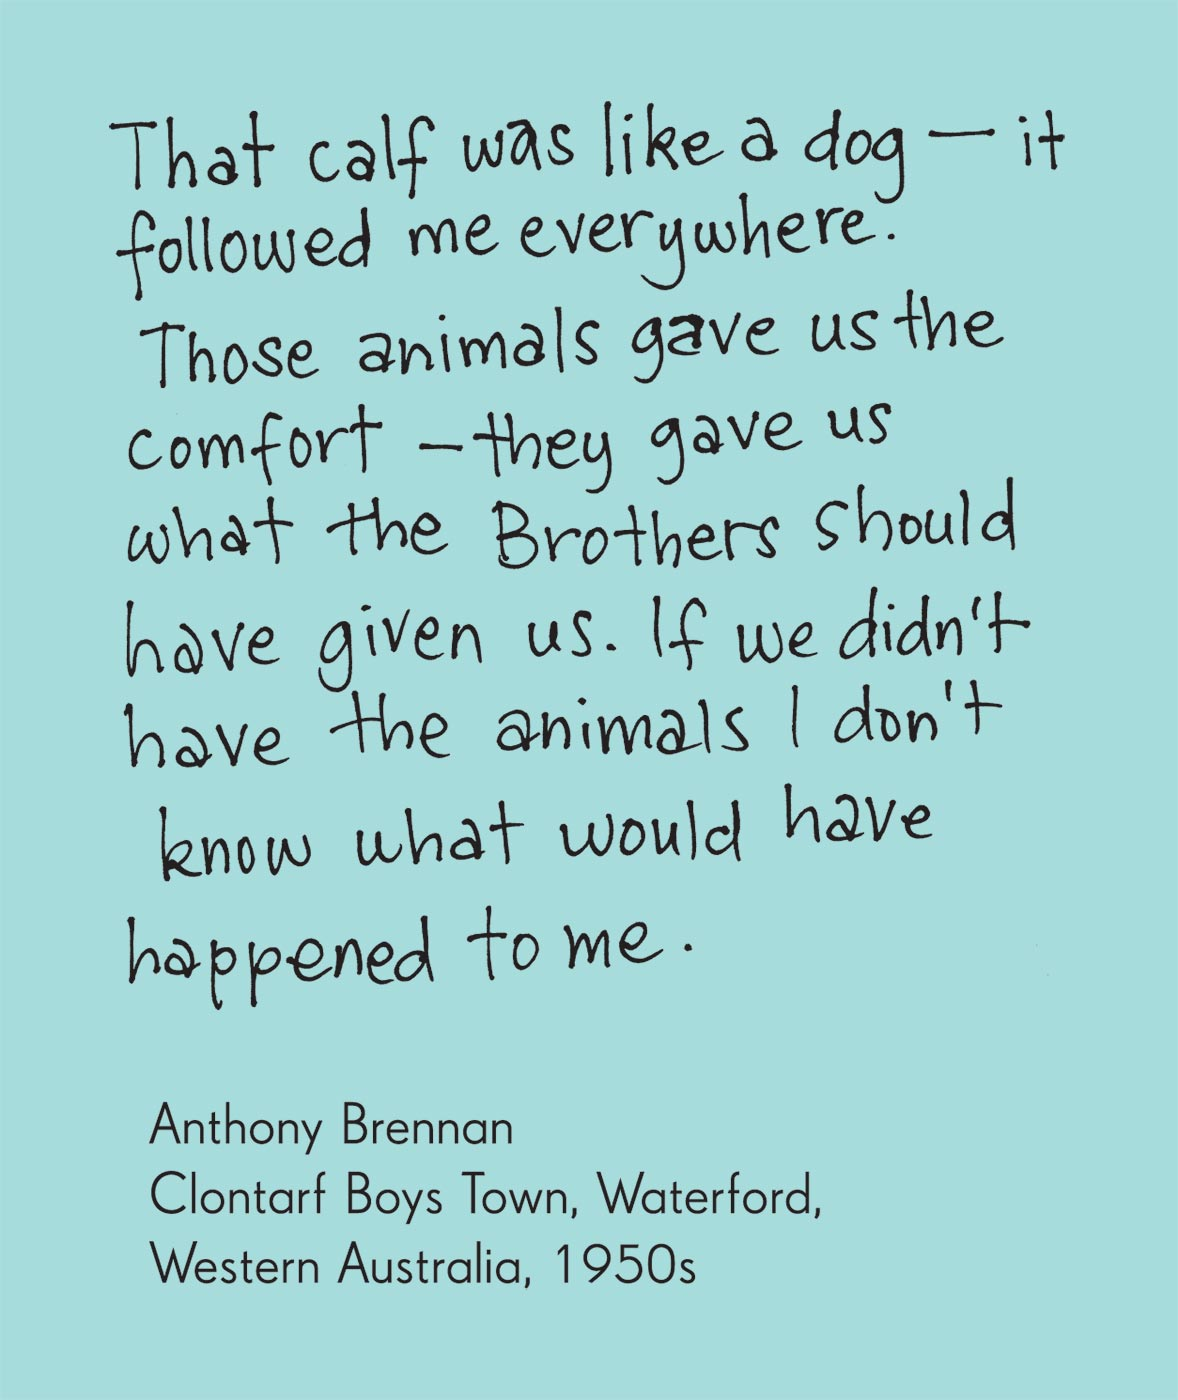 Exhibition graphic panel that reads: 'That calf was like a dog — it followed me everywhere. Those animals gave us the comfort — they gave us what the Brothers should have given us. If we didn't have the animals I don't know what would have happened to me', attributed to 'Anthony Brennan, Clontarf Boys Town, Waterford, Western Australia, 1950s'. - click to view larger image